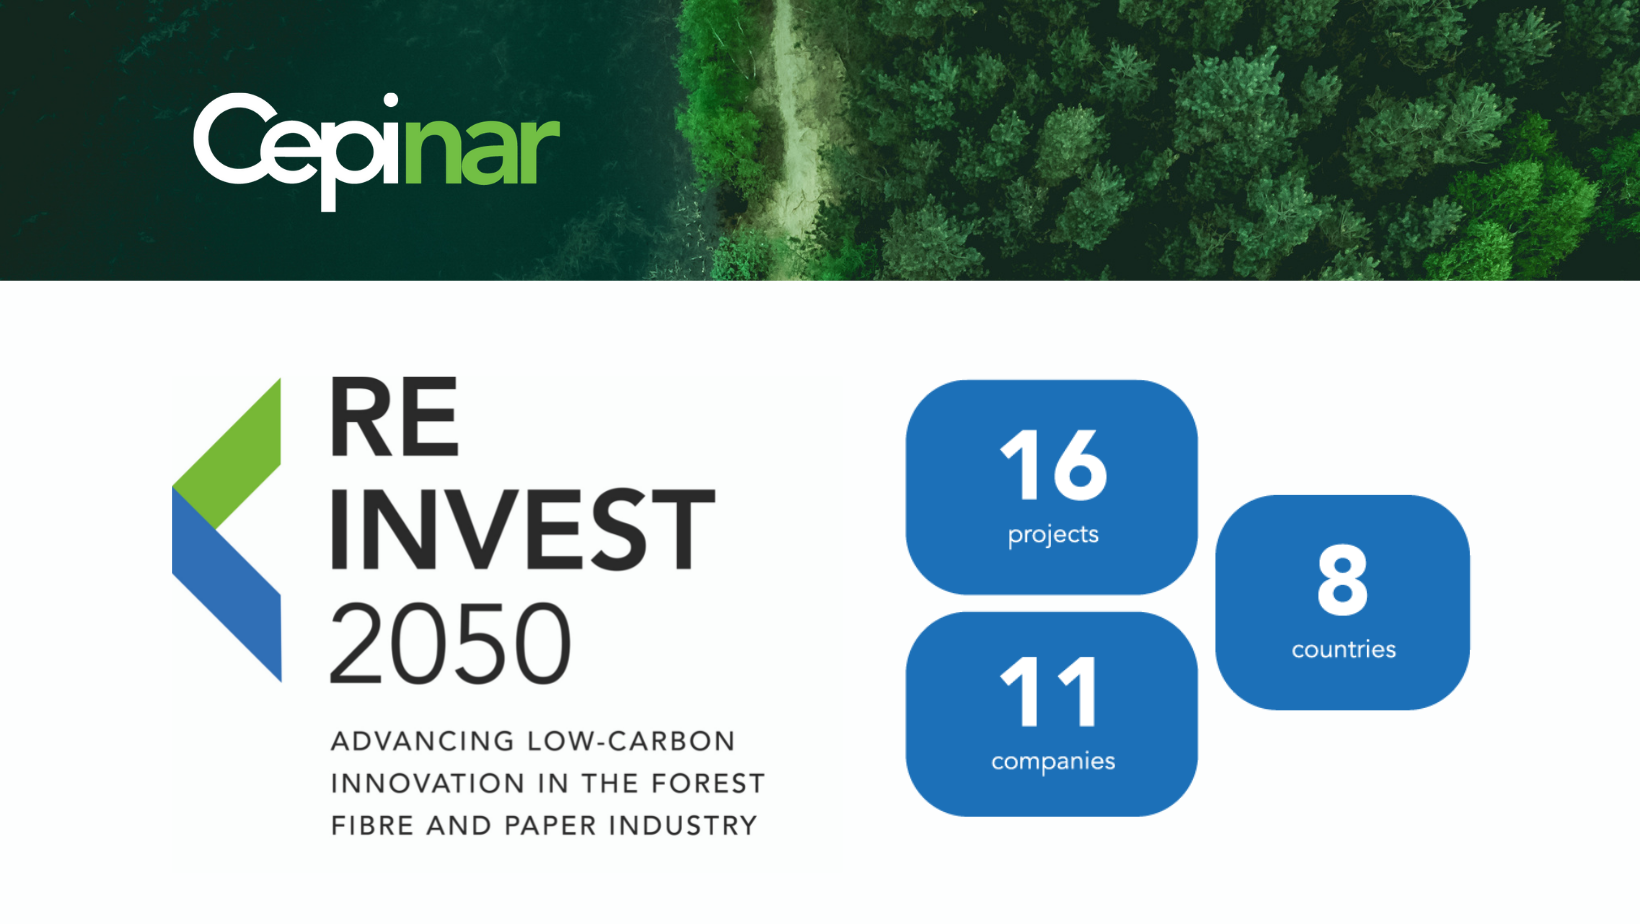 REINVEST 2050: How does the paper industry advance innovative low-carbon investments in Europe?